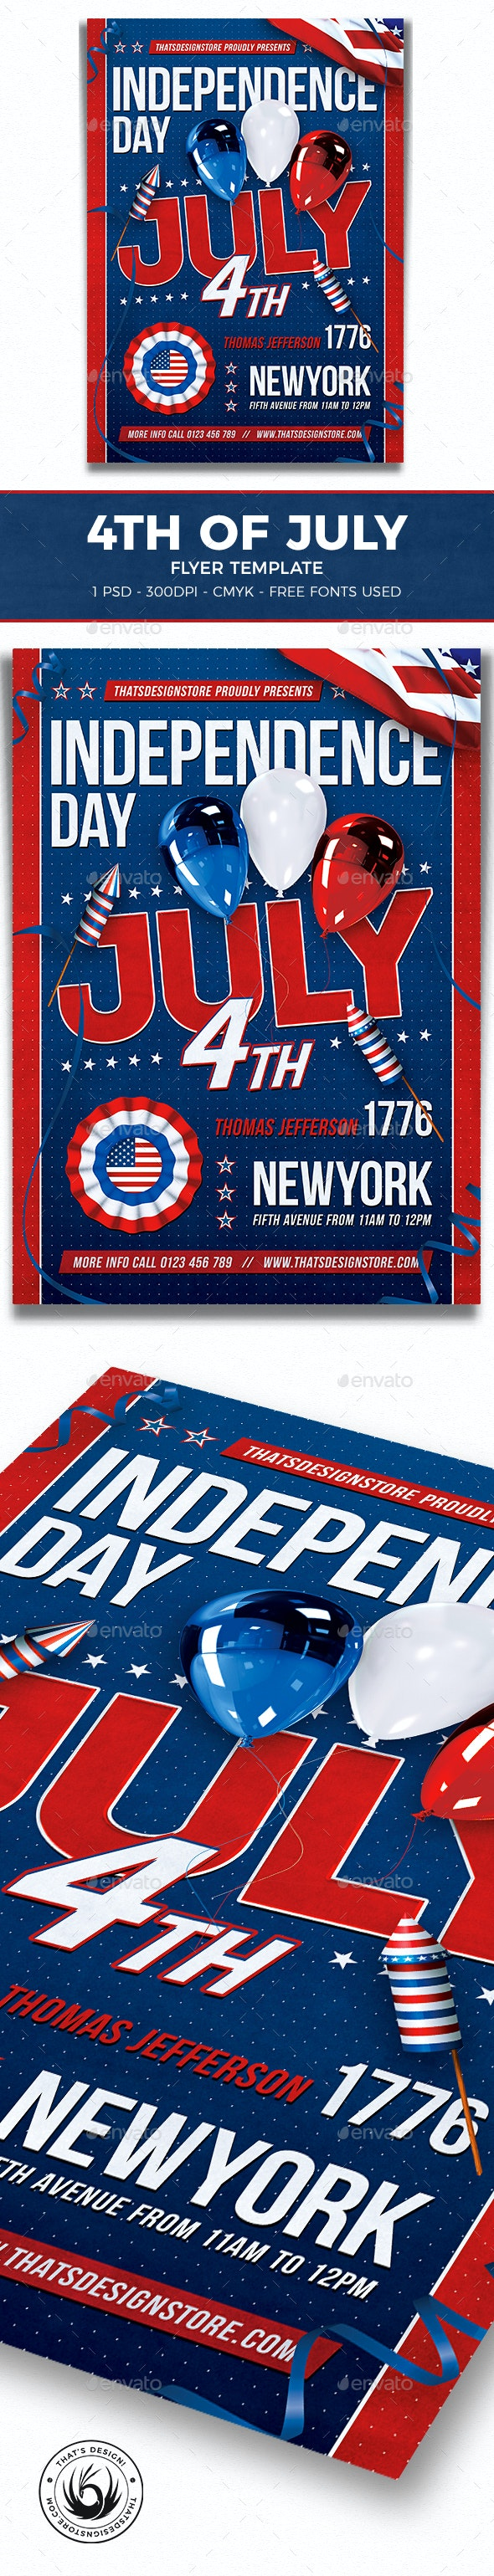 Independence Day Flyer Template V6 - Clubs & Parties Events